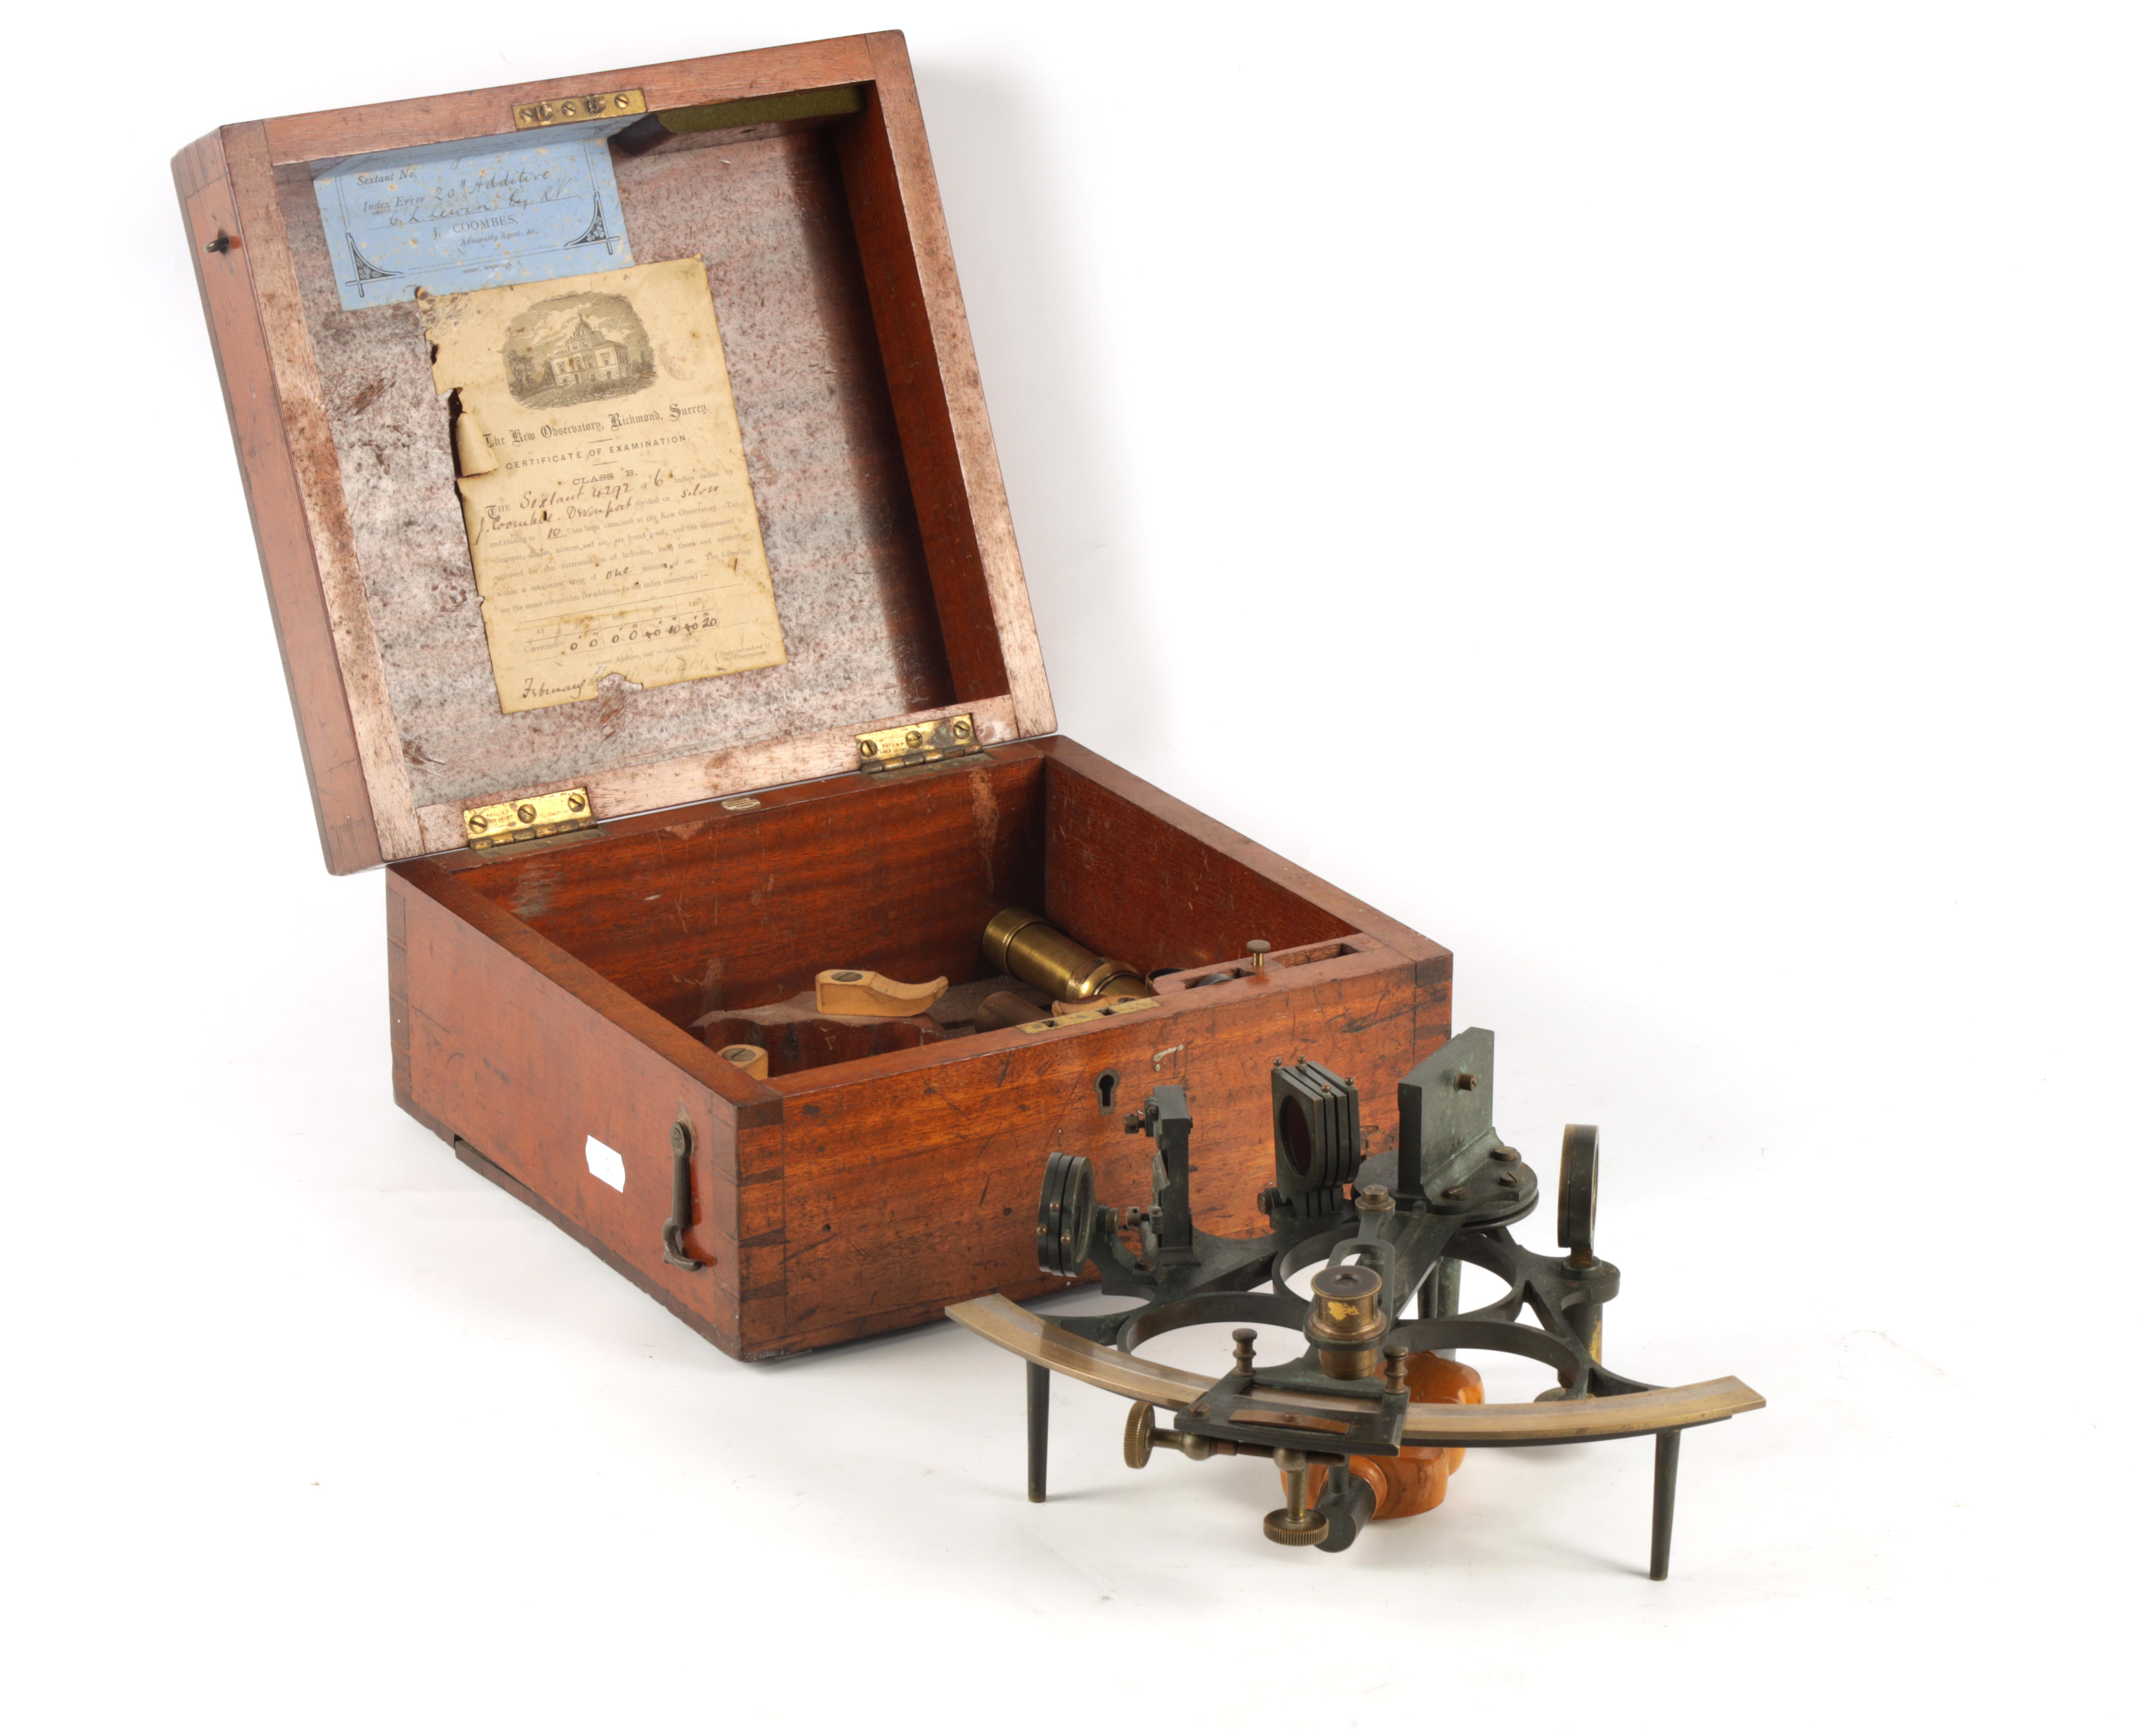 J. COOMBES, OPTICIAN & ADMIRALTY AGENT, DEVONPORT. A LATE 19TH CENTURY BRASS FRAMED SEXTANT IN